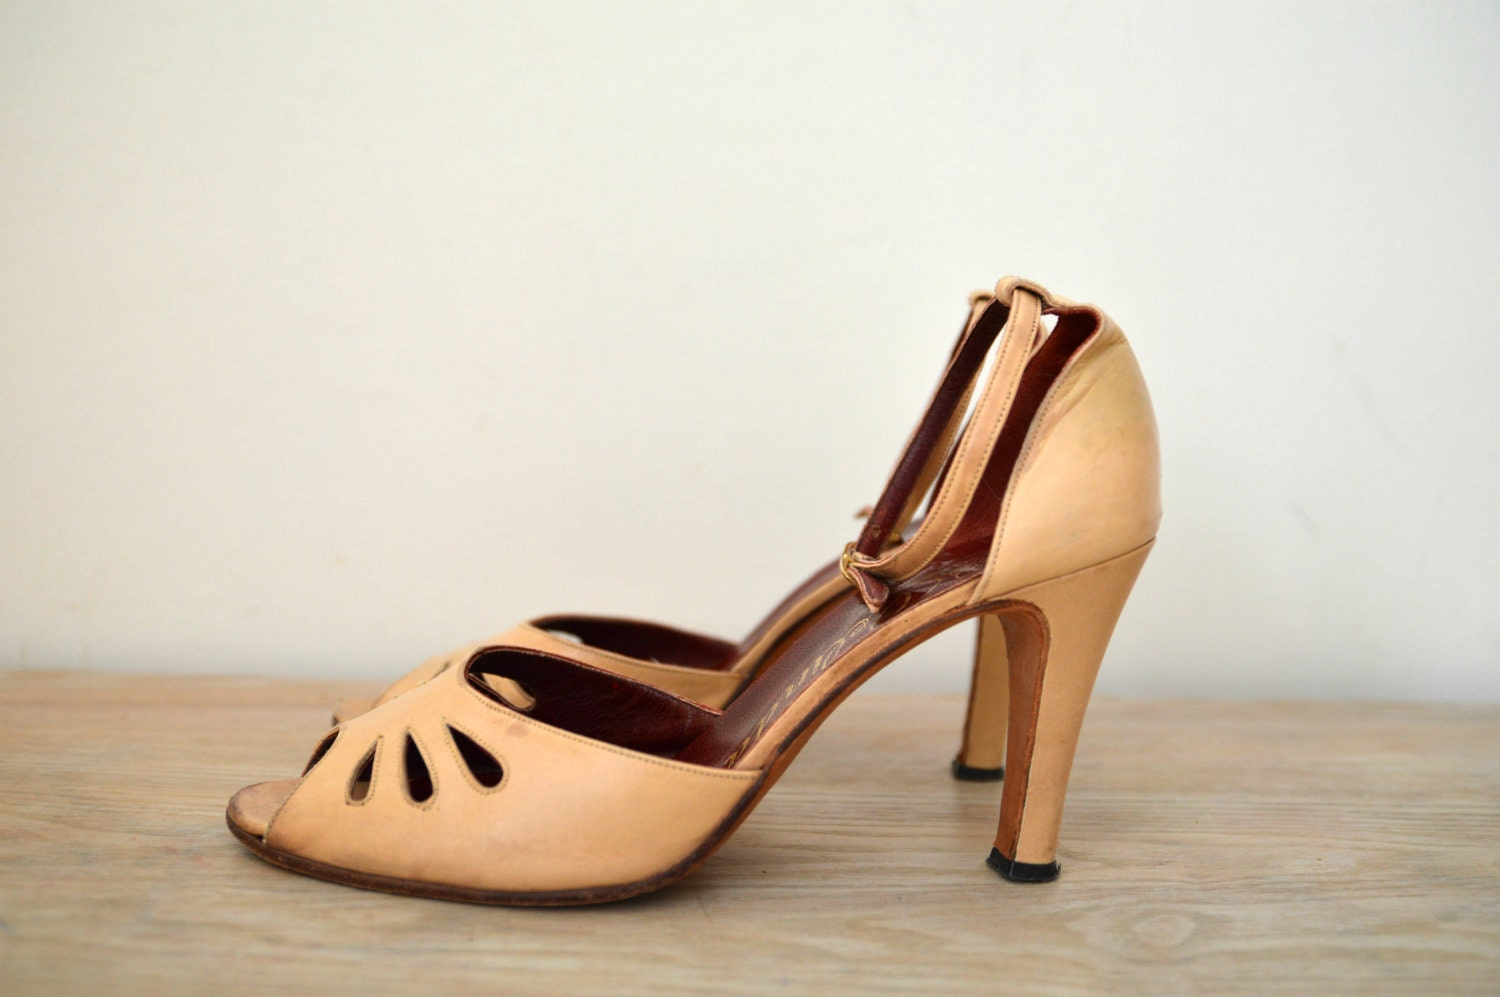 Vintage High Heels Leather Sandals